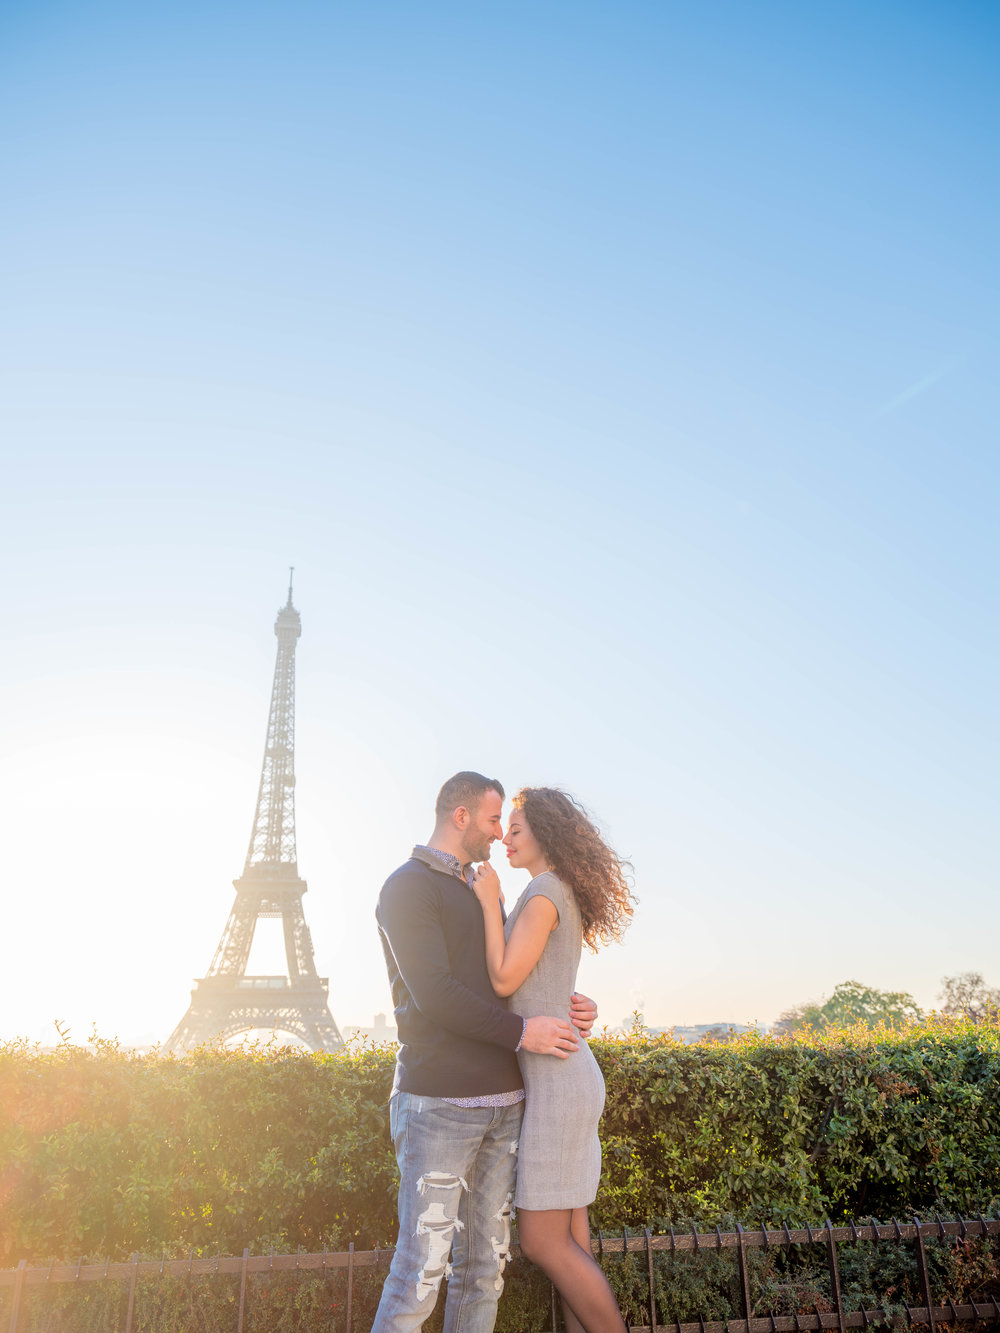 engaged couple at eiffel tower paris france